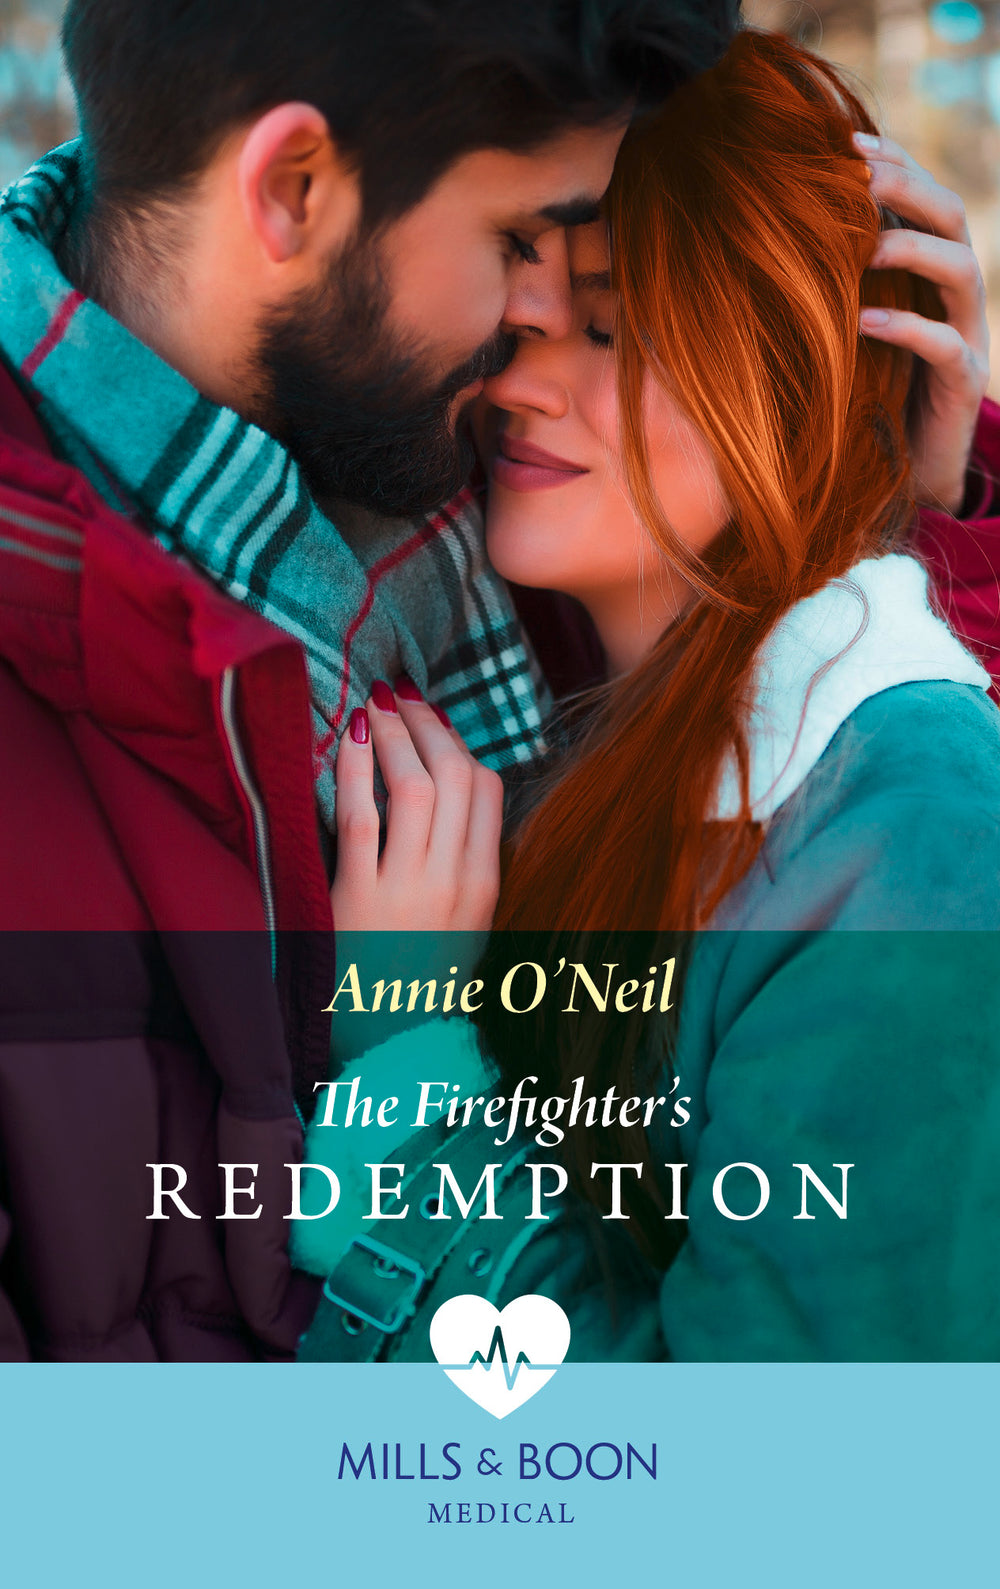 The Firefighter's Redemption - Chapter 5